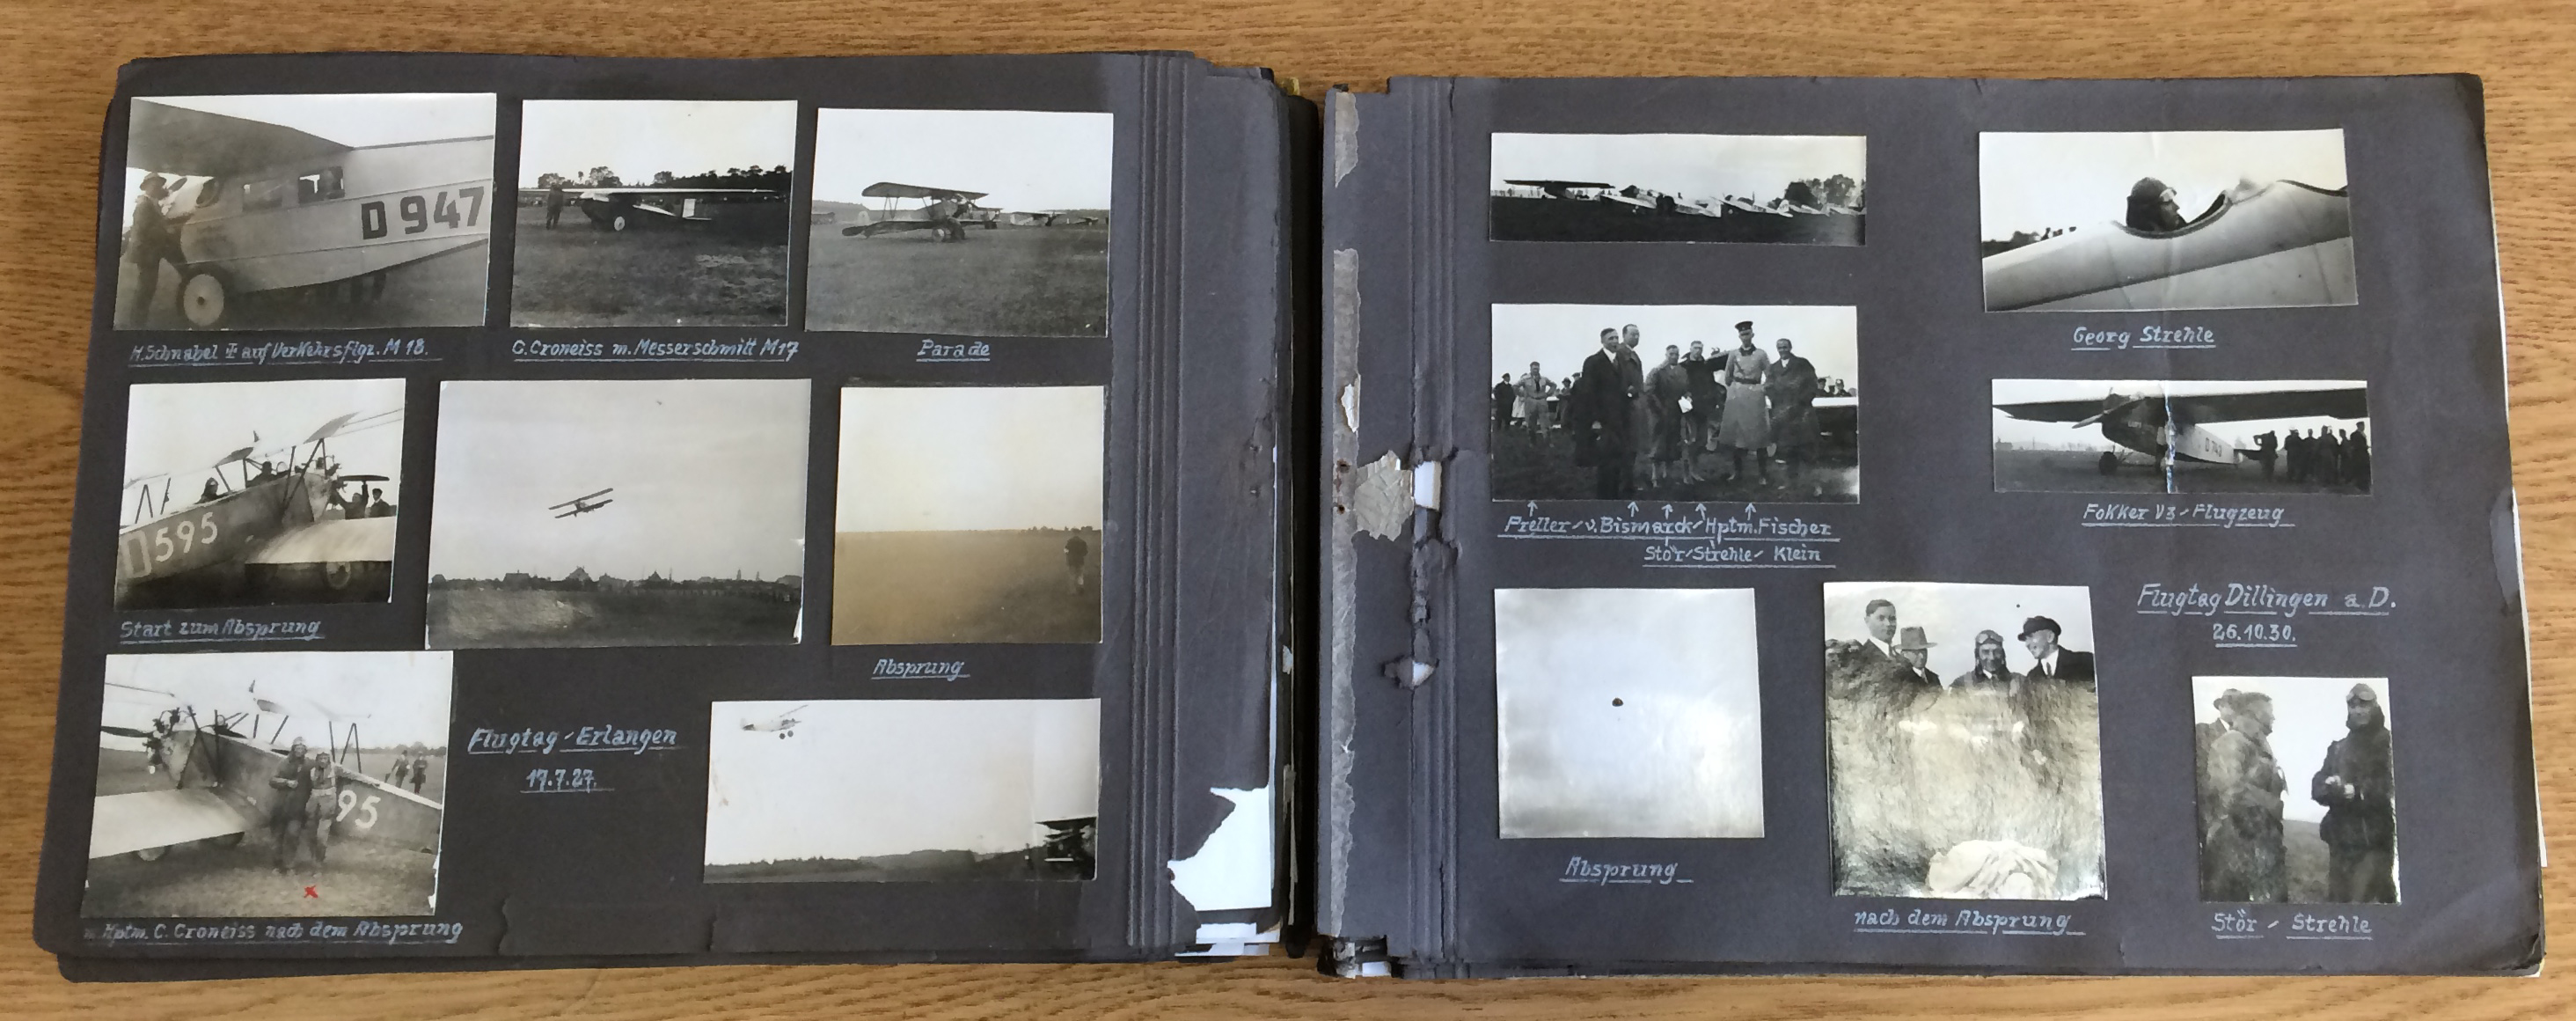 View of Gunermann's album lying open, showing a page of images from 1927.